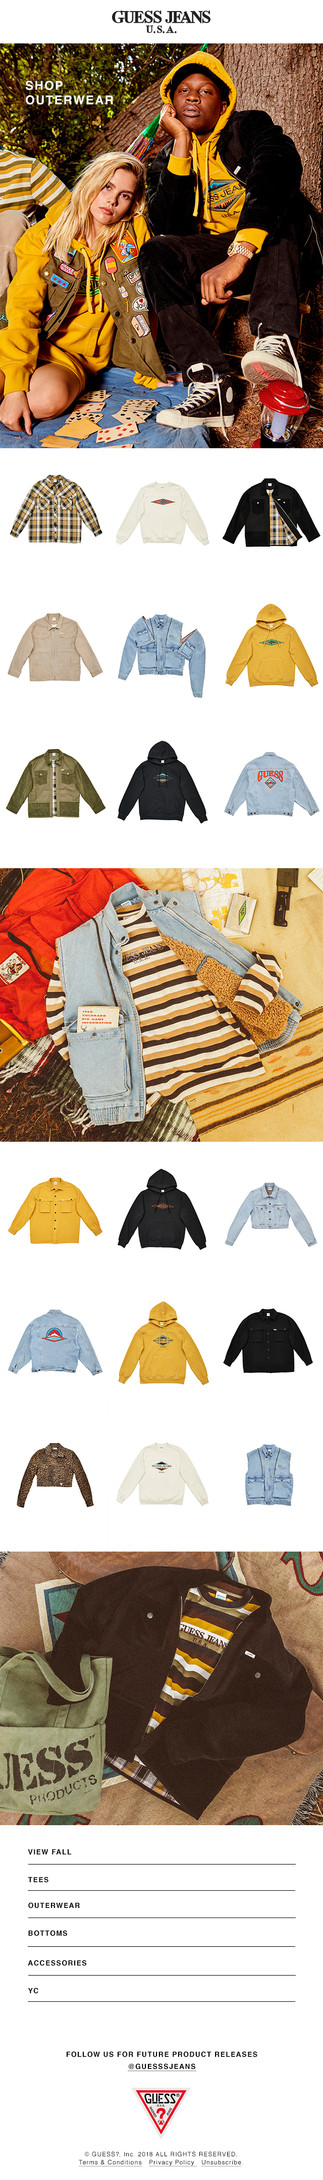 033_NEW-MOCKUP-GJ_EMAIL_Outerwear-Push_2